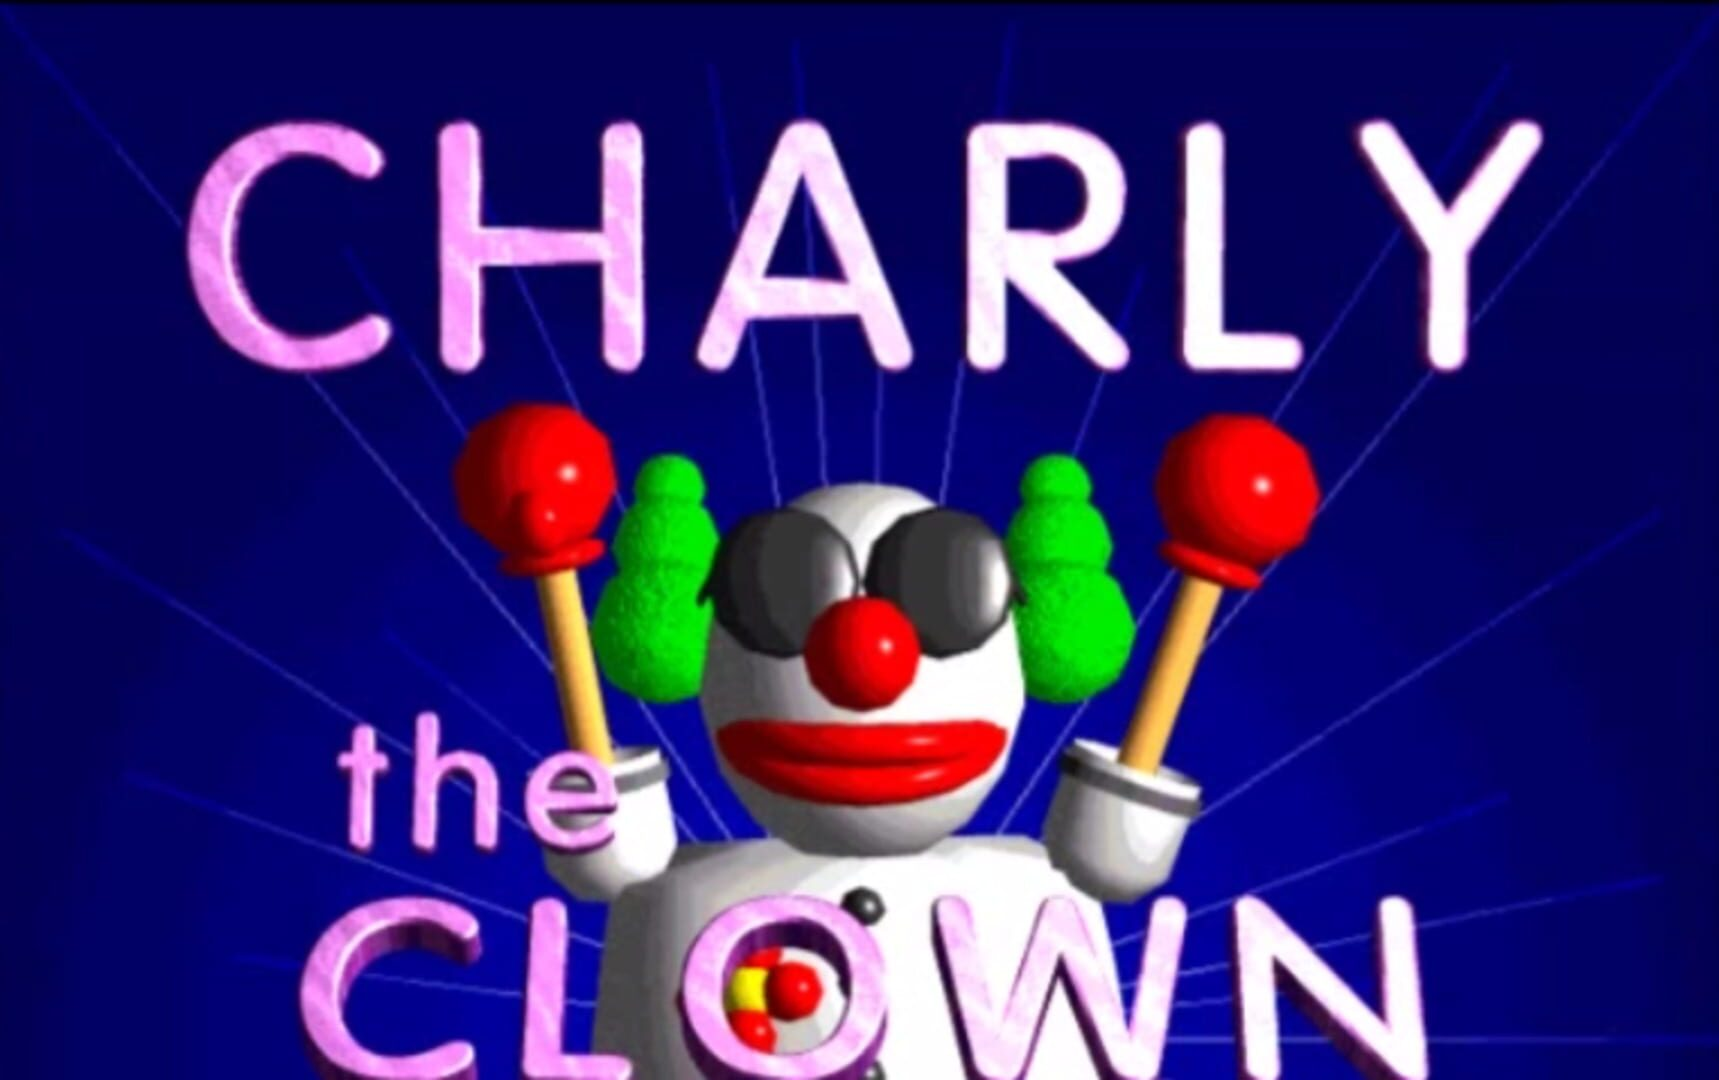 buy Charly the Clown cd key for all platform